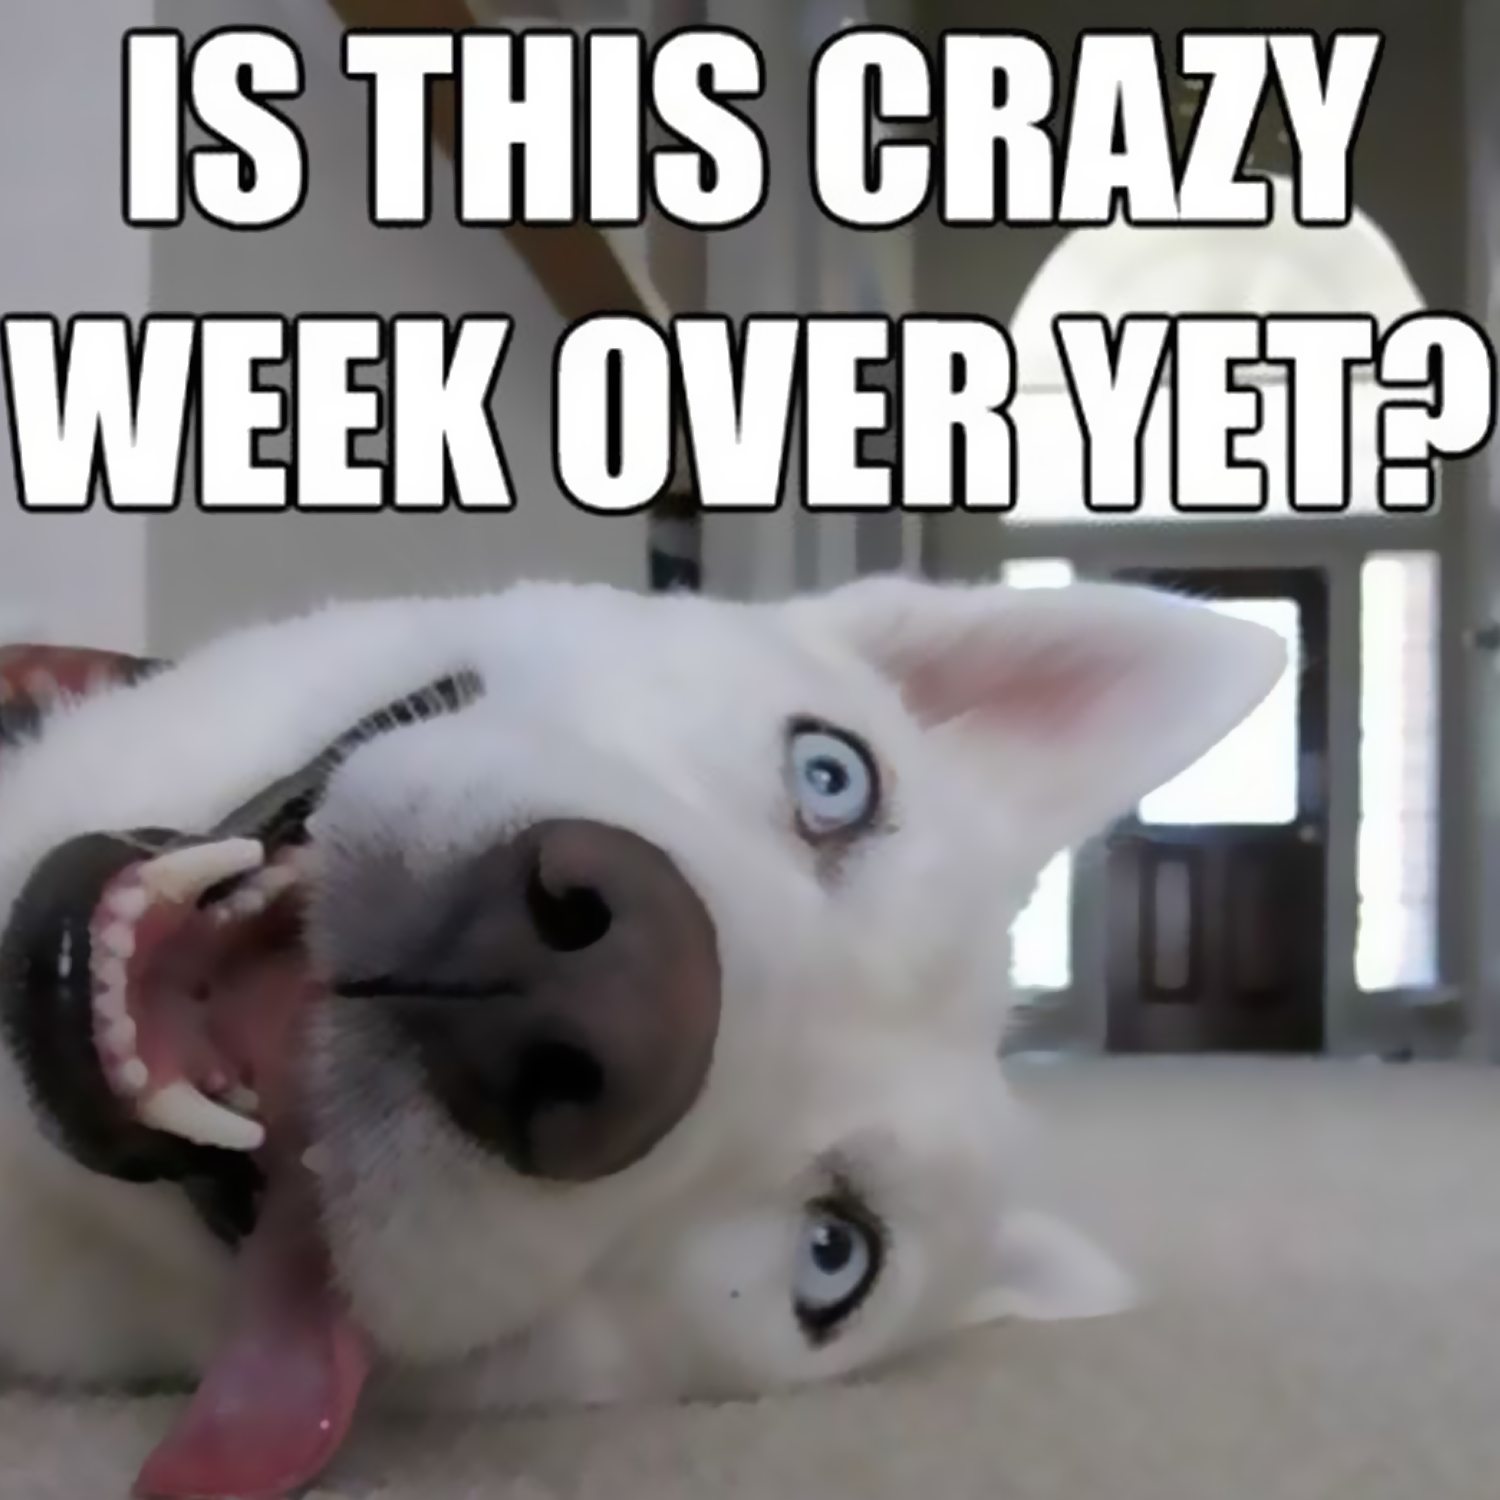 Quotes about Crazy week (48 quotes)